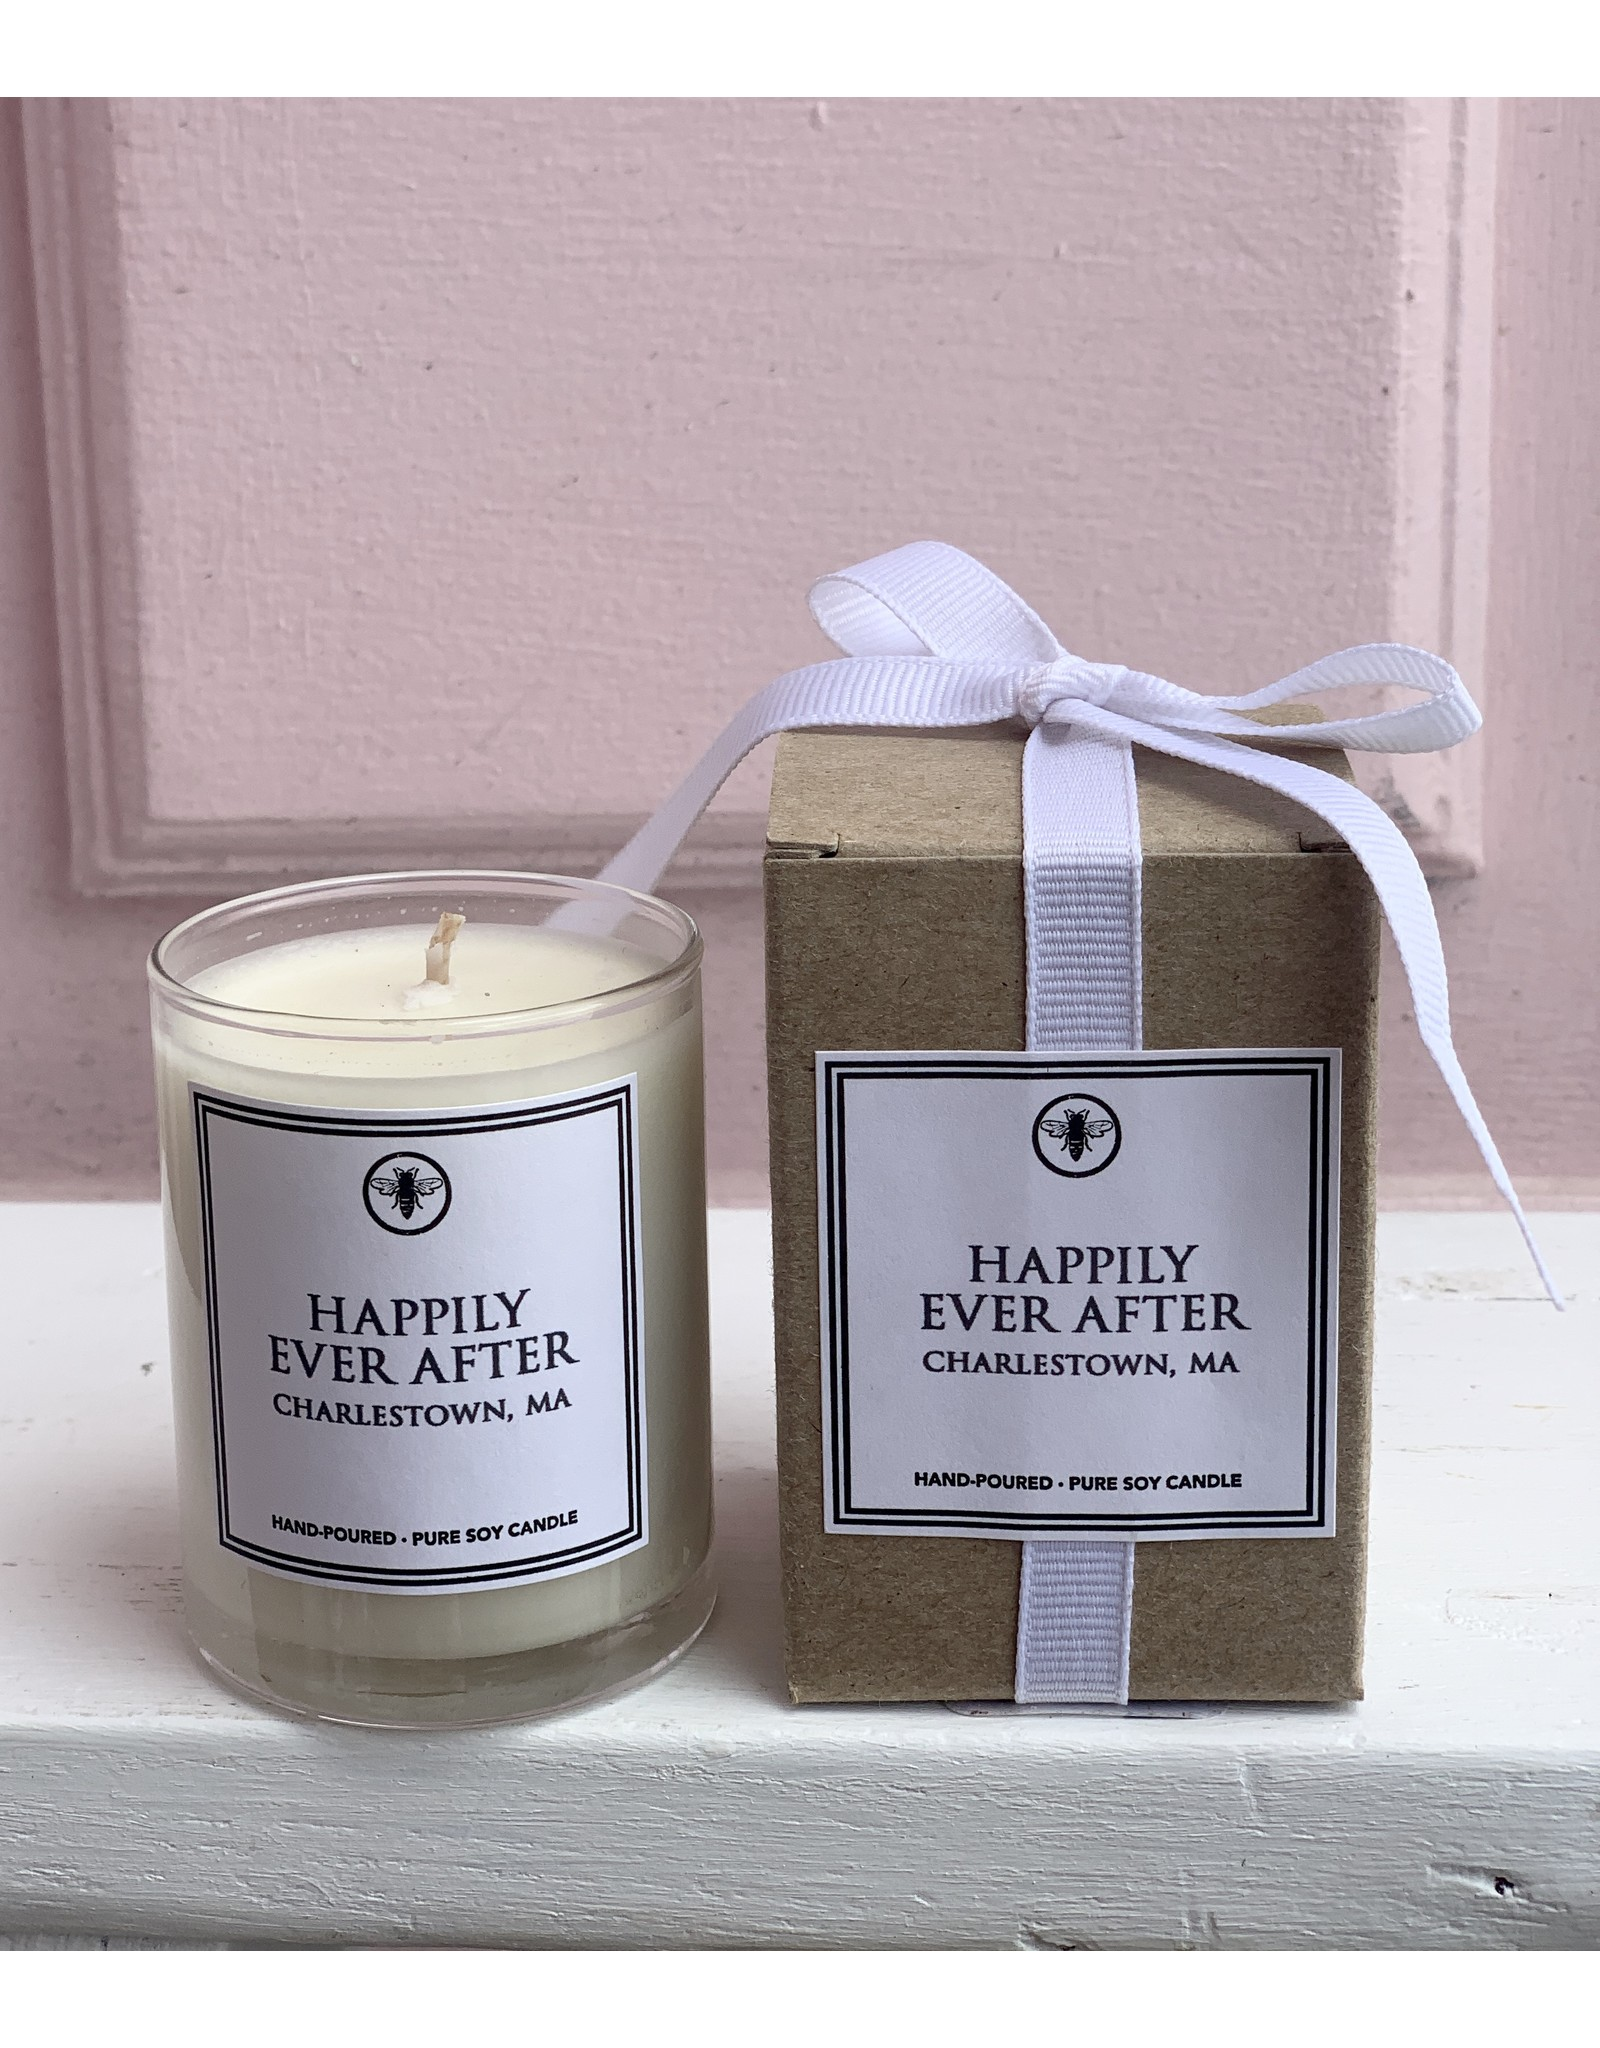 Happily Ever After 3 oz. Votive Candle